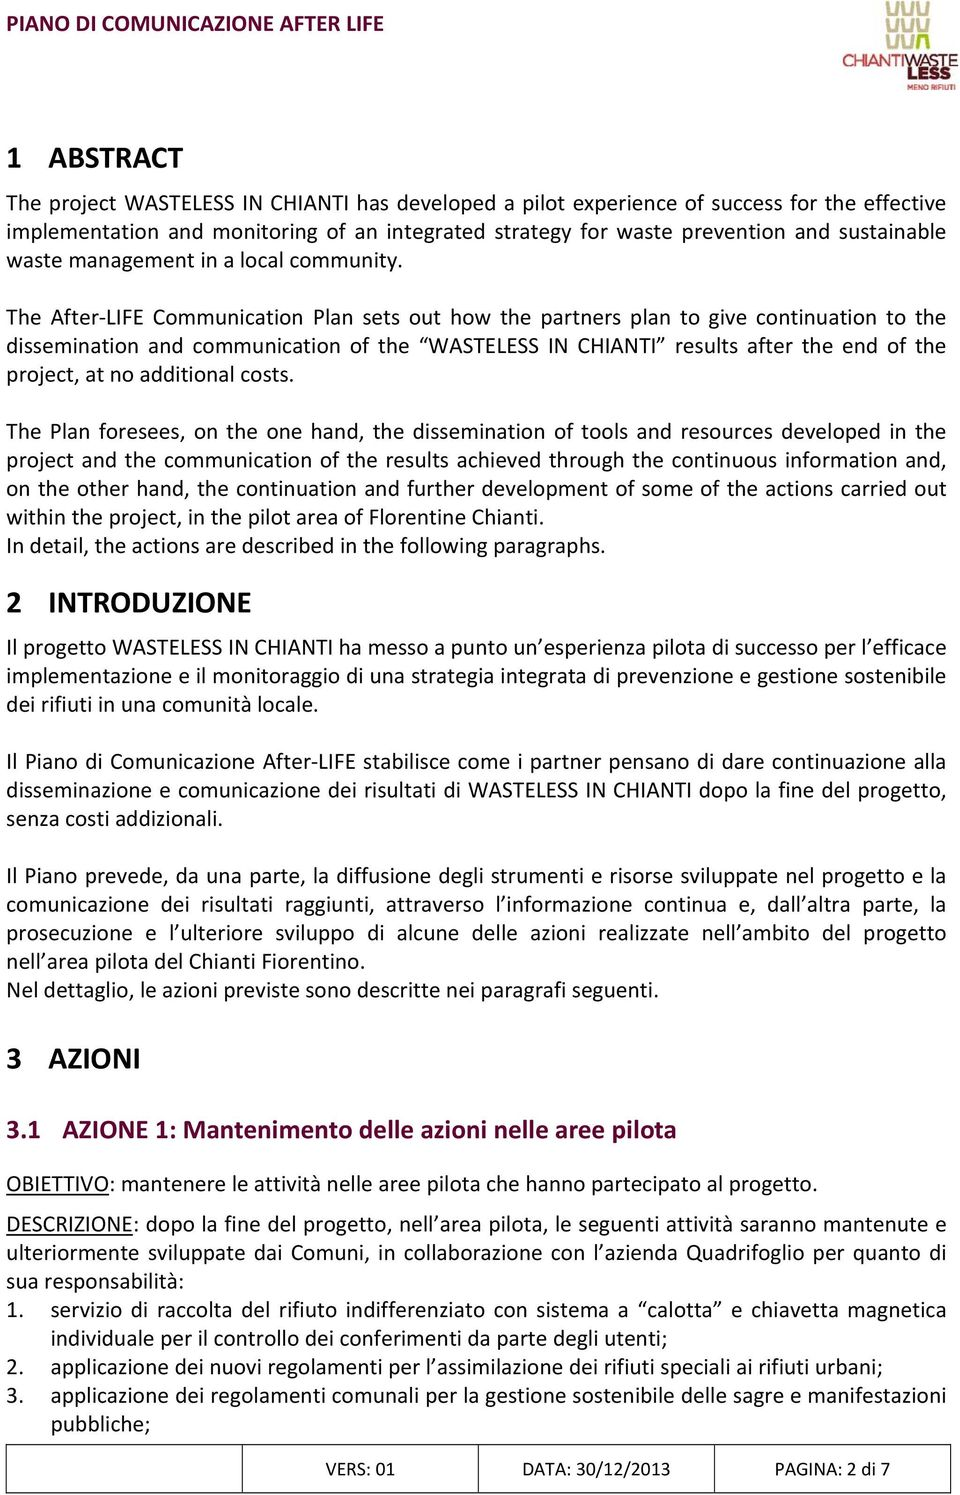 The After LIFE Communication Plan sets out how the partners plan to give continuation to the dissemination and communication of the WASTELESS IN CHIANTI results after the end of the project, at no